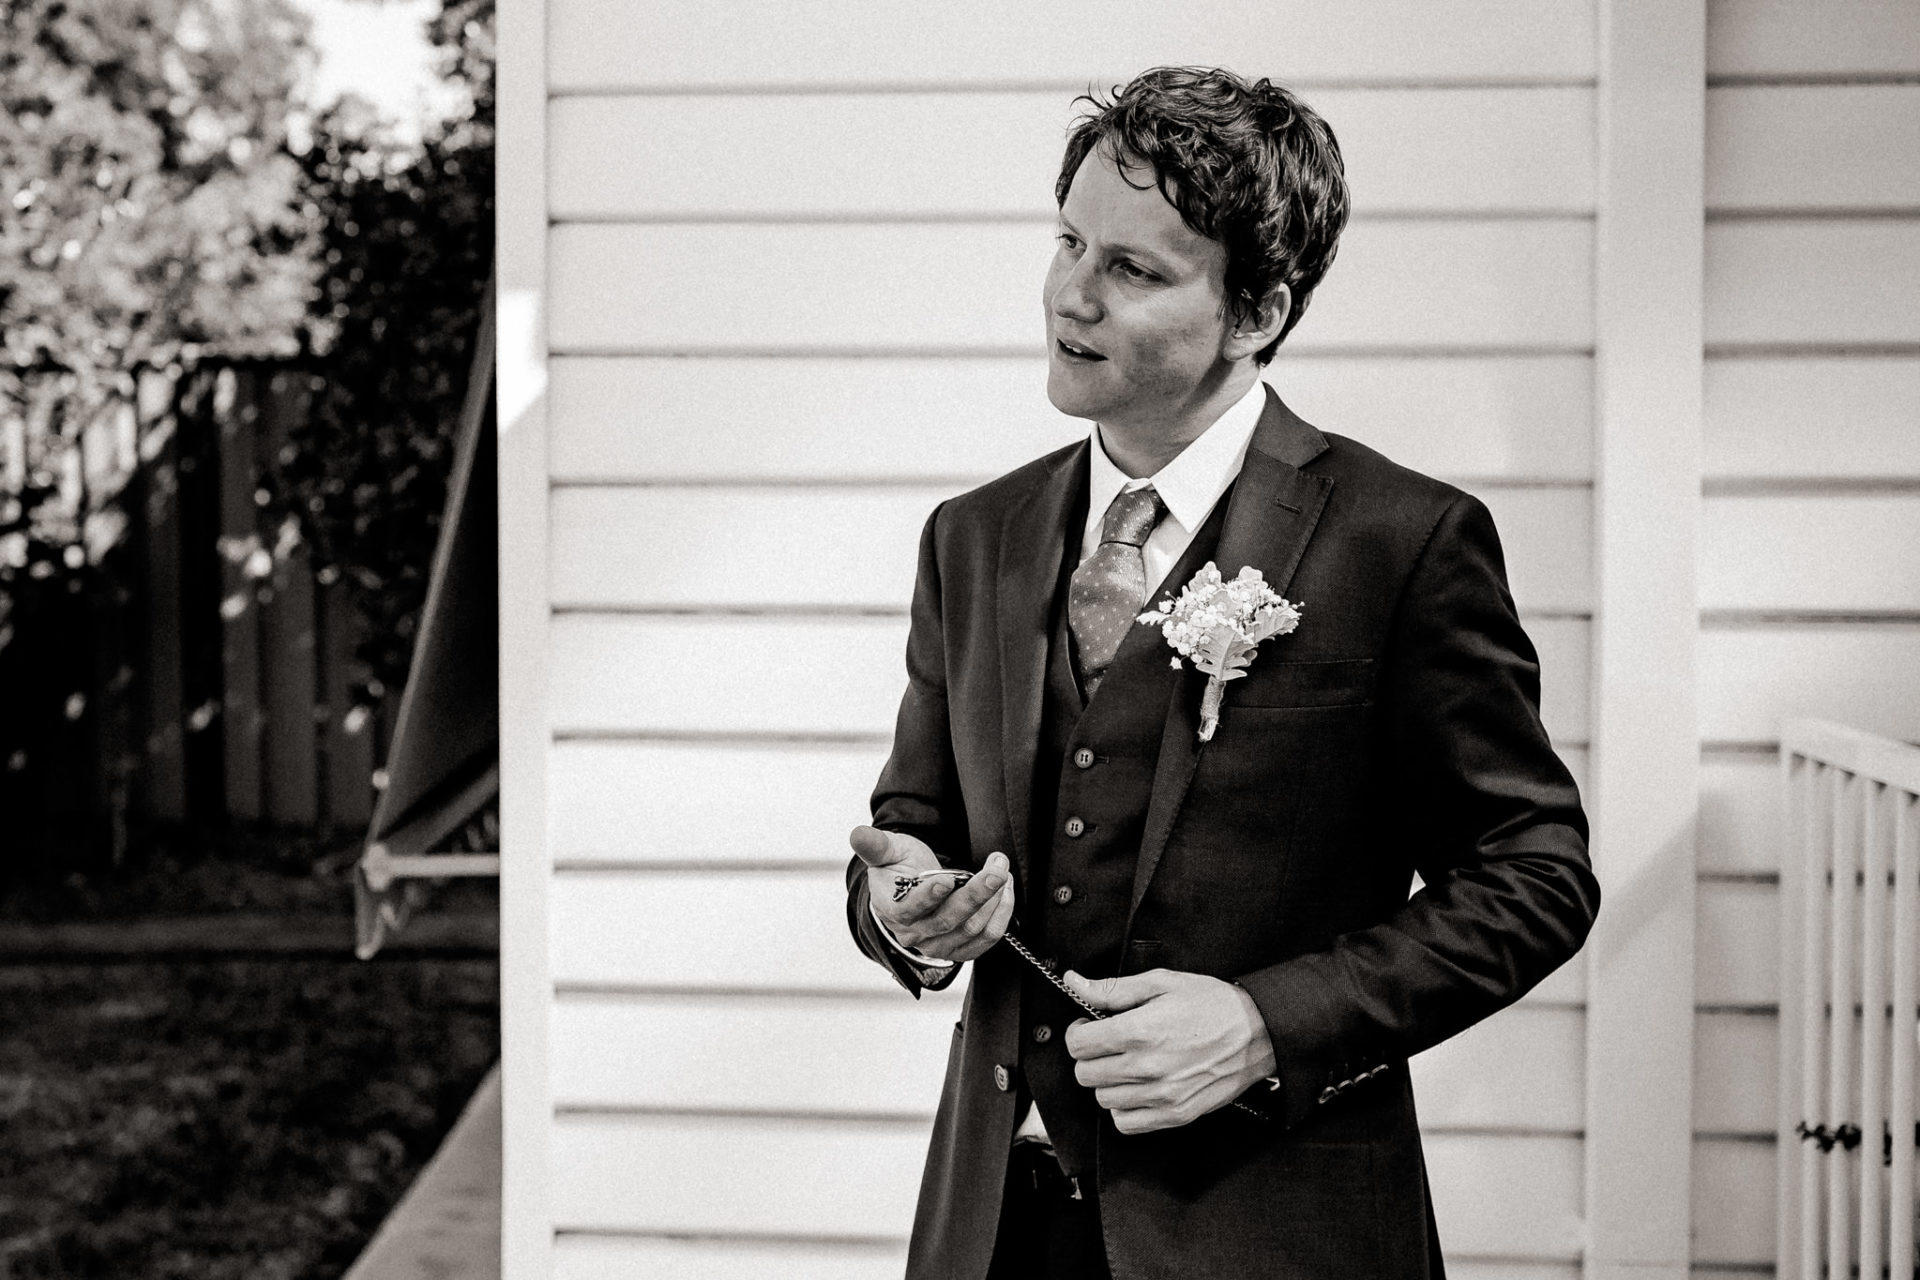 backyard-wedding-australia-melbourne-groom-just-before-first-look-checking-pocket-watch